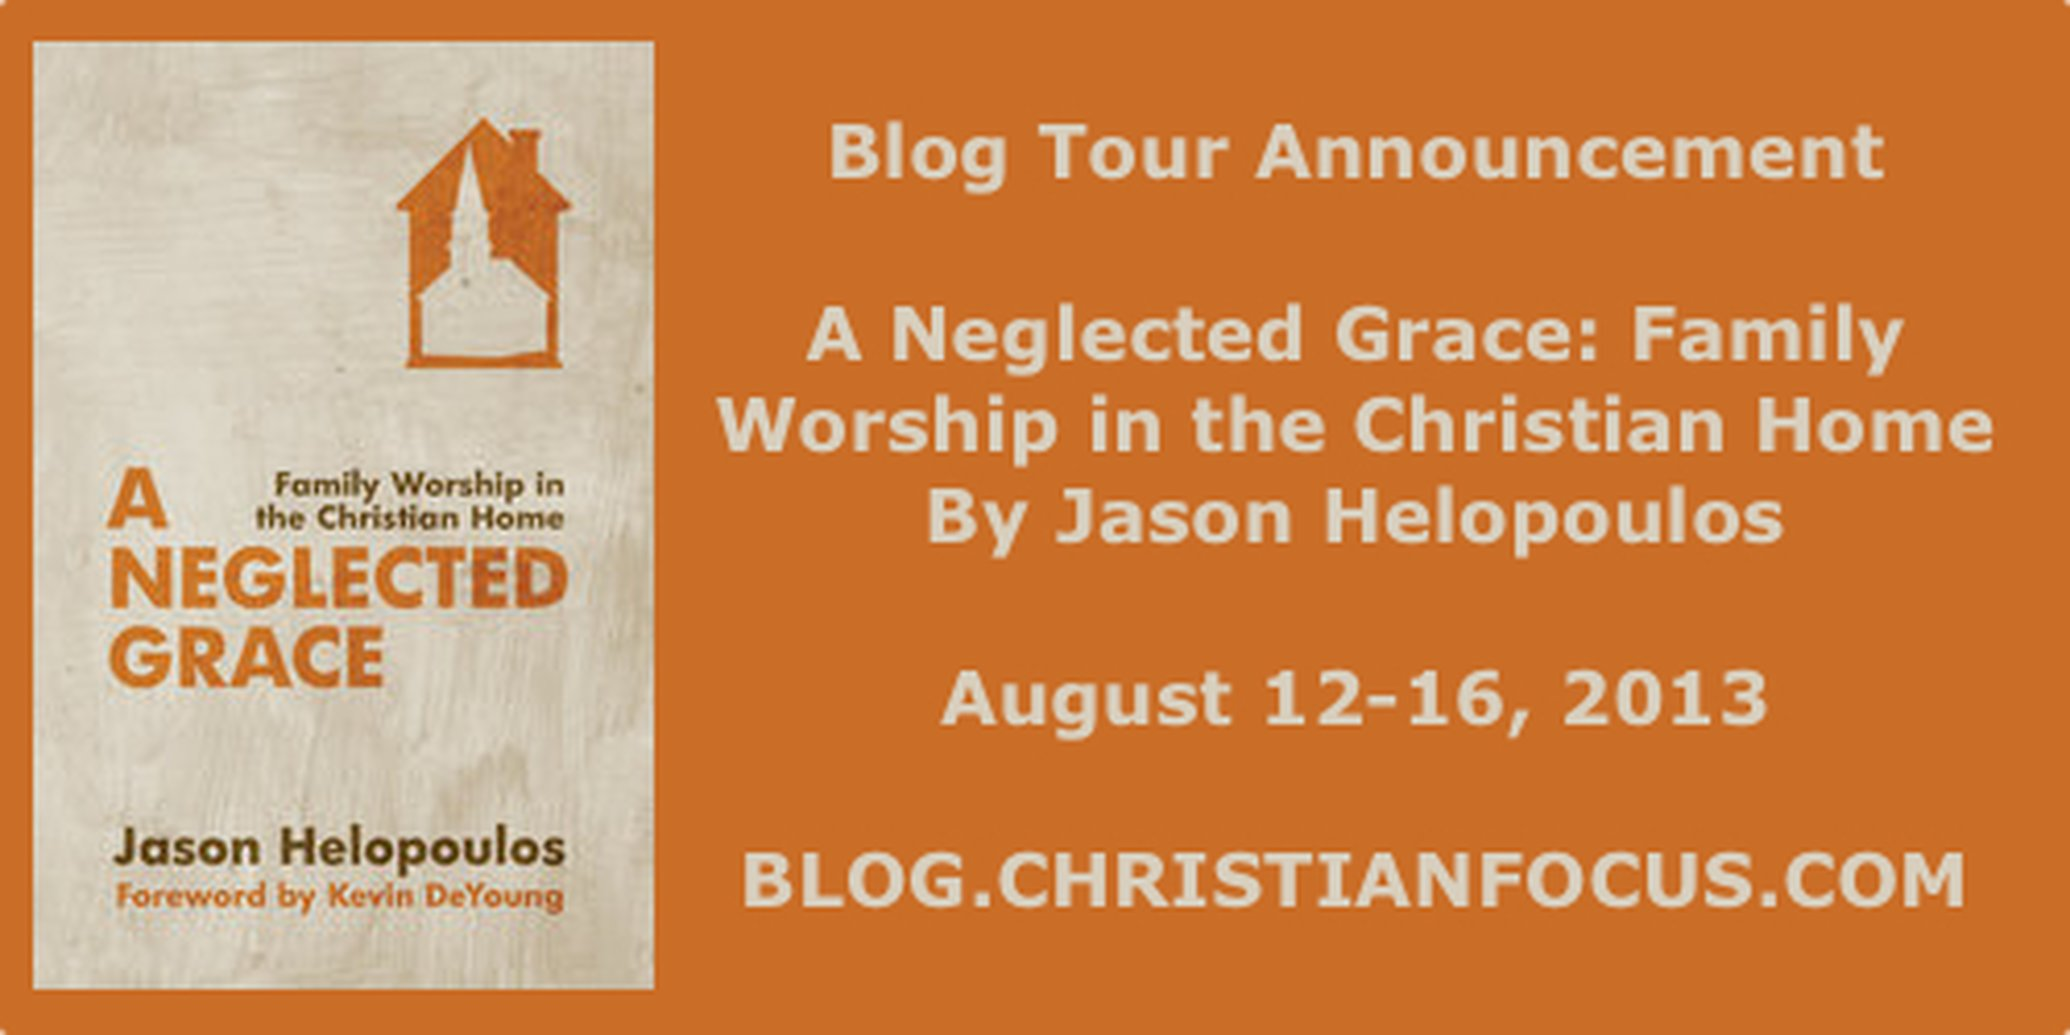 Available for Review - A Neglected Grace: Family Worship in the Christian Home by Jason Helopoulos